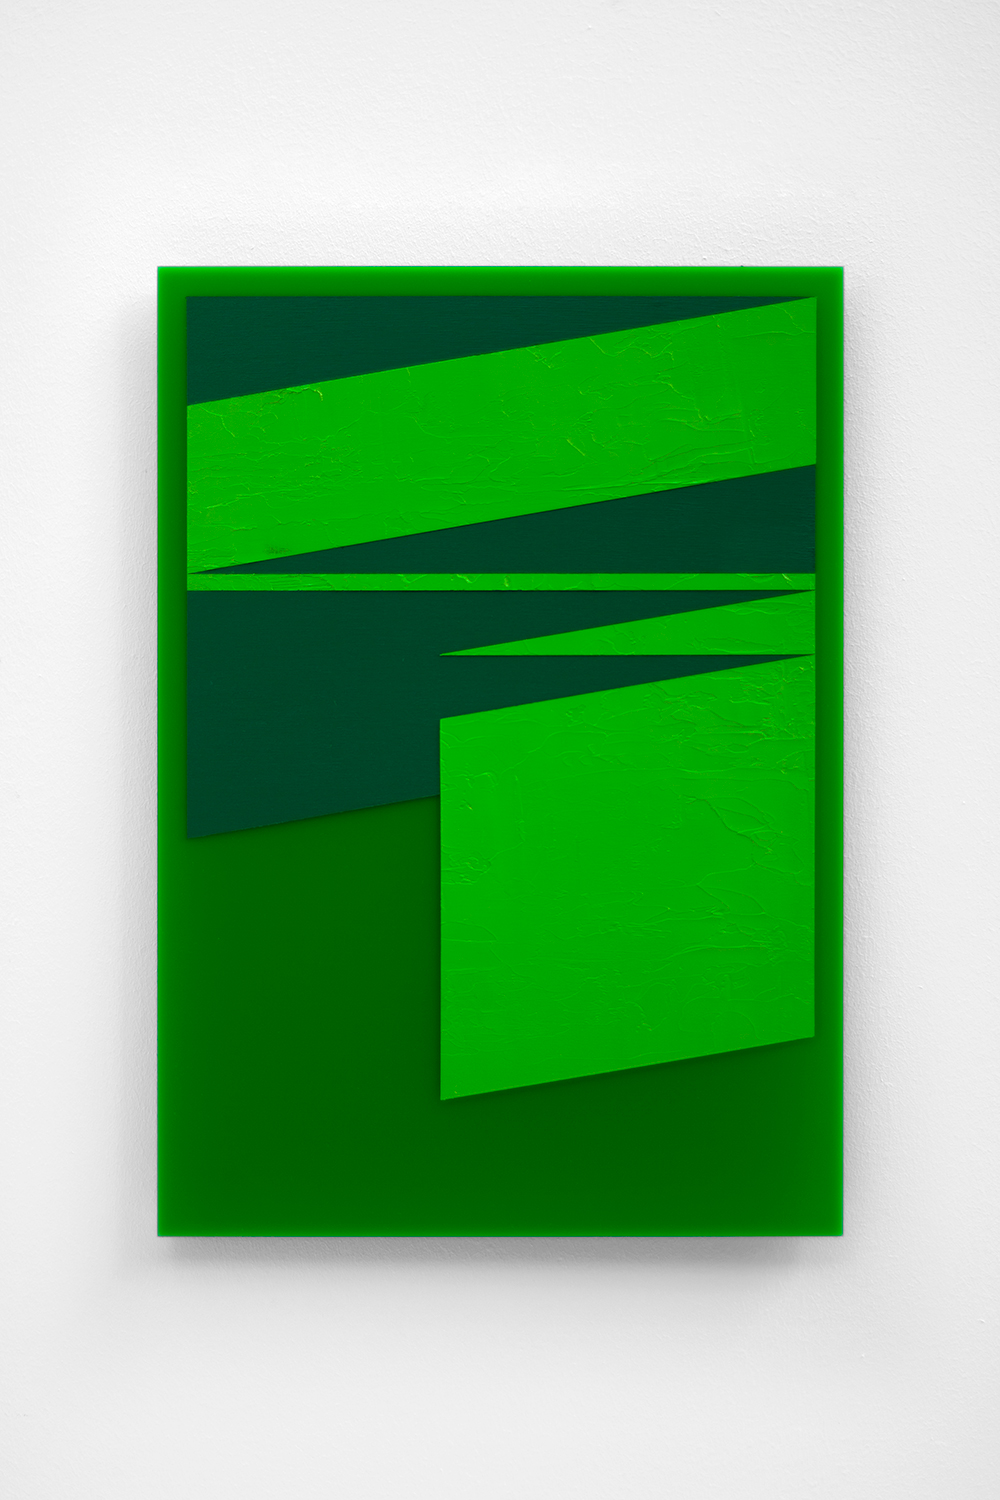 The Green Series nr. 8 42 x 29,7 cm ( A3 Size ) Oil and arylic on green perspex